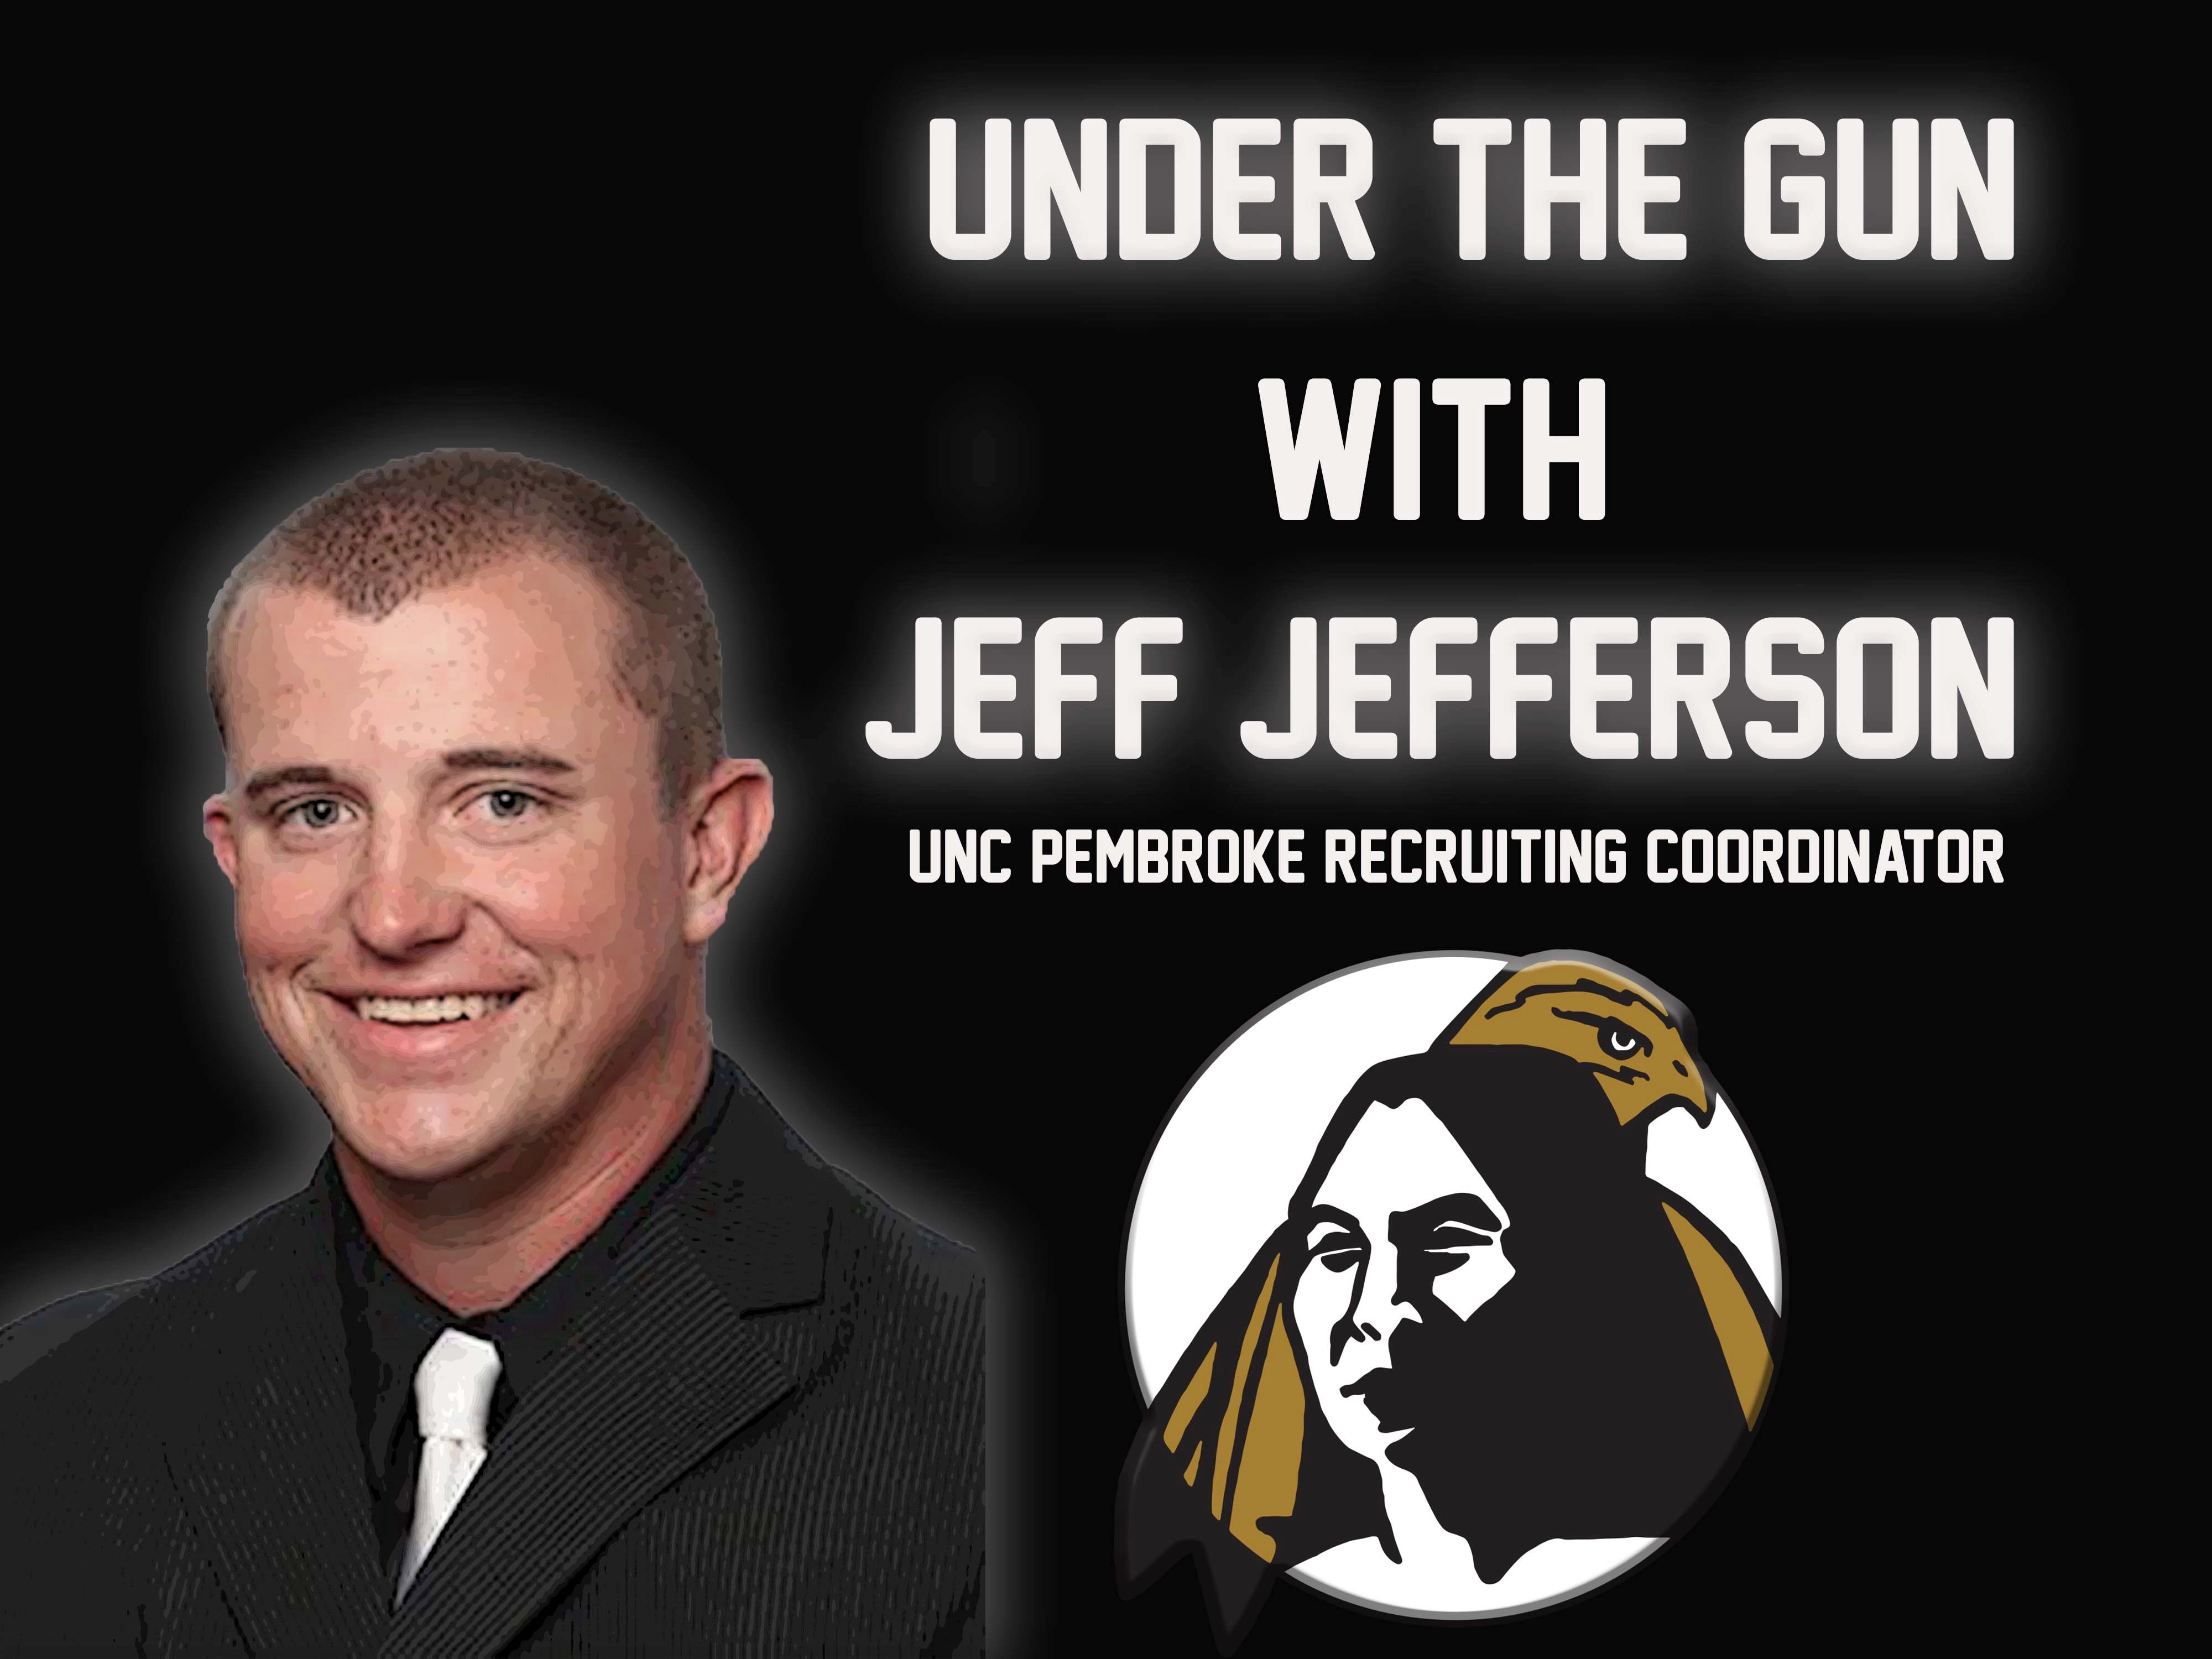 Under The Gun: Jeff Jefferson